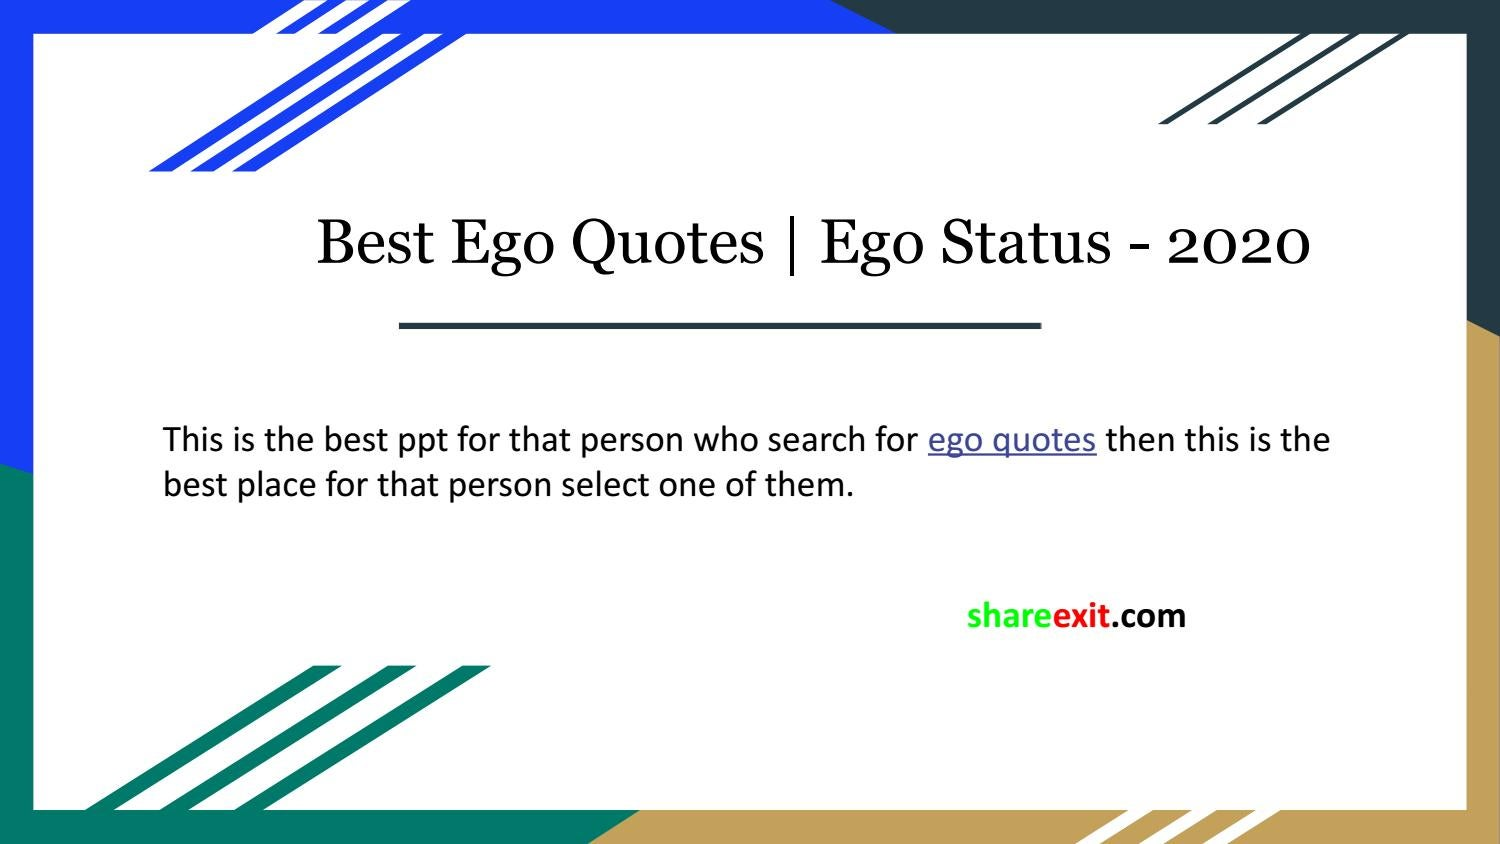 ego quotes quotes about ego egotism egos by shareexit issuu